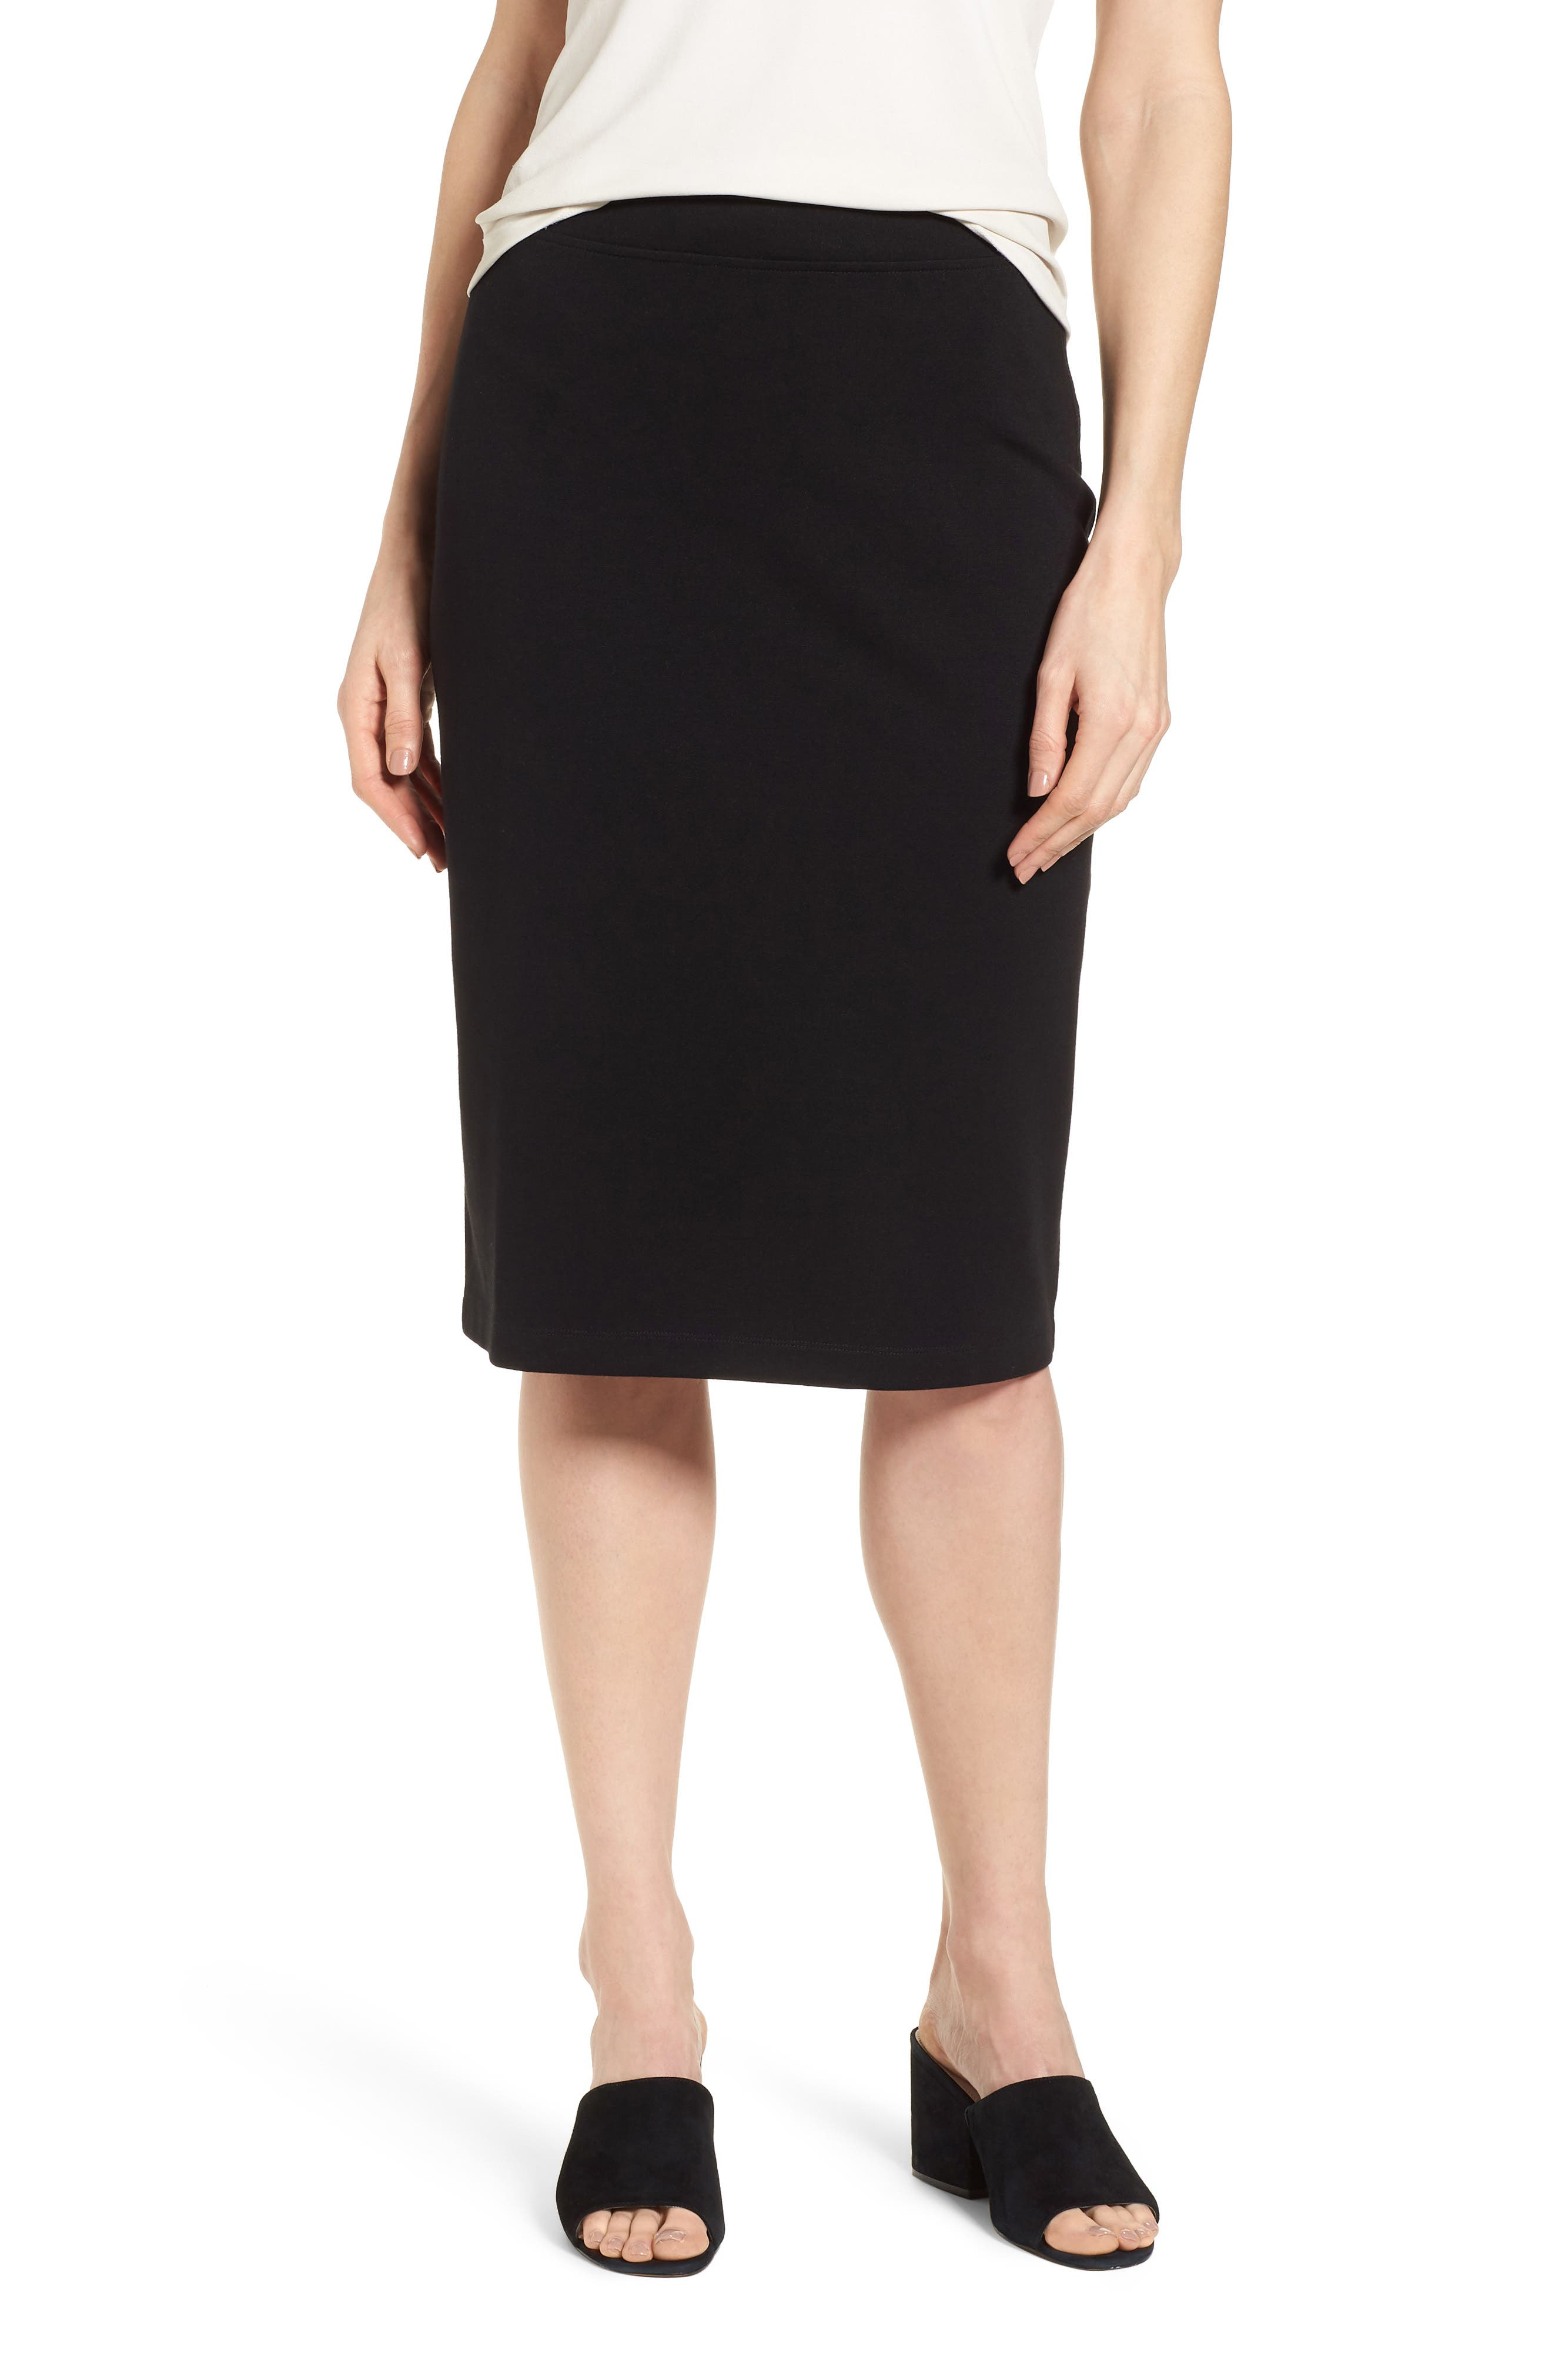 Eileen Fisher Tencel® Lyocell Blend Knit Pencil Skirt